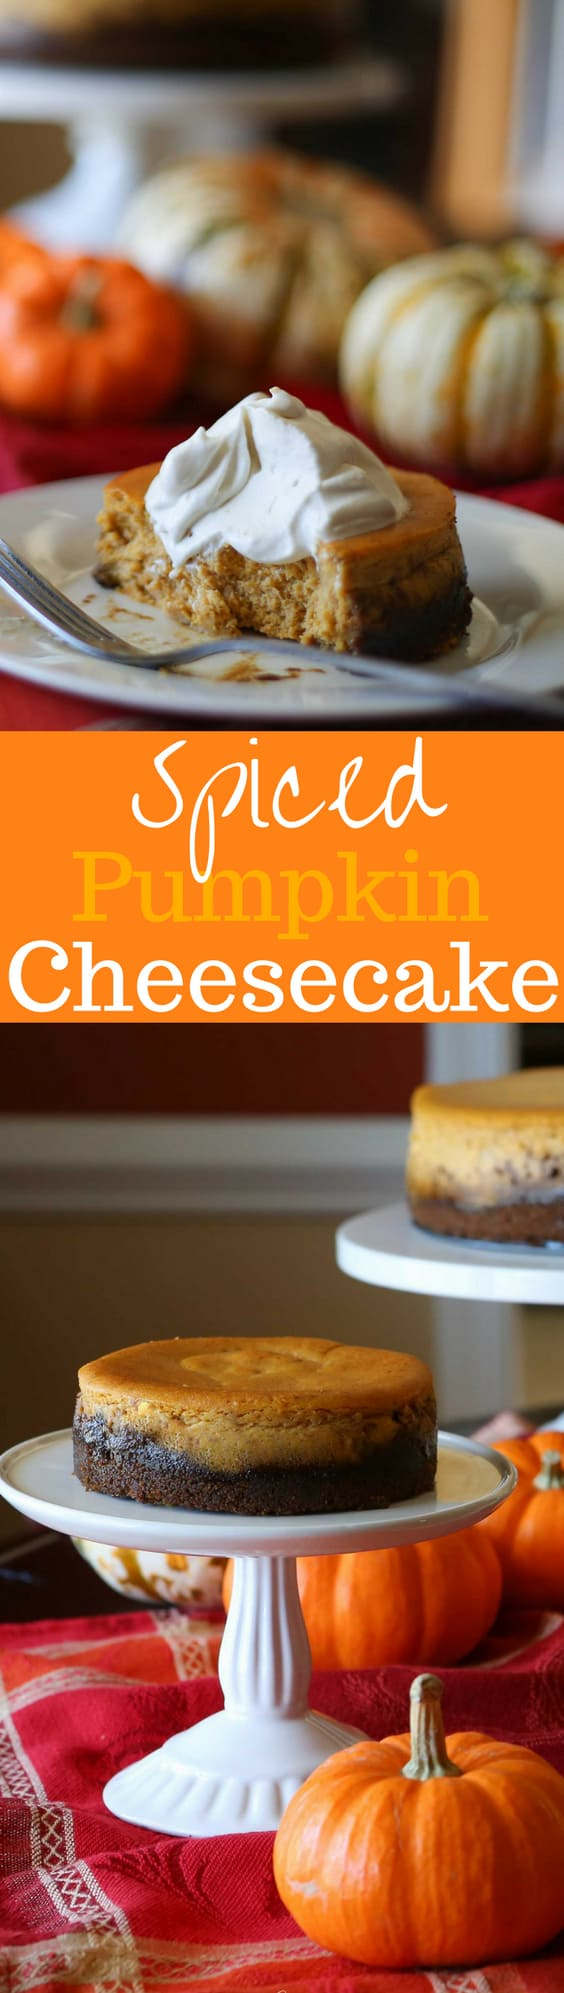 spiced-pumpkin-cheesecake